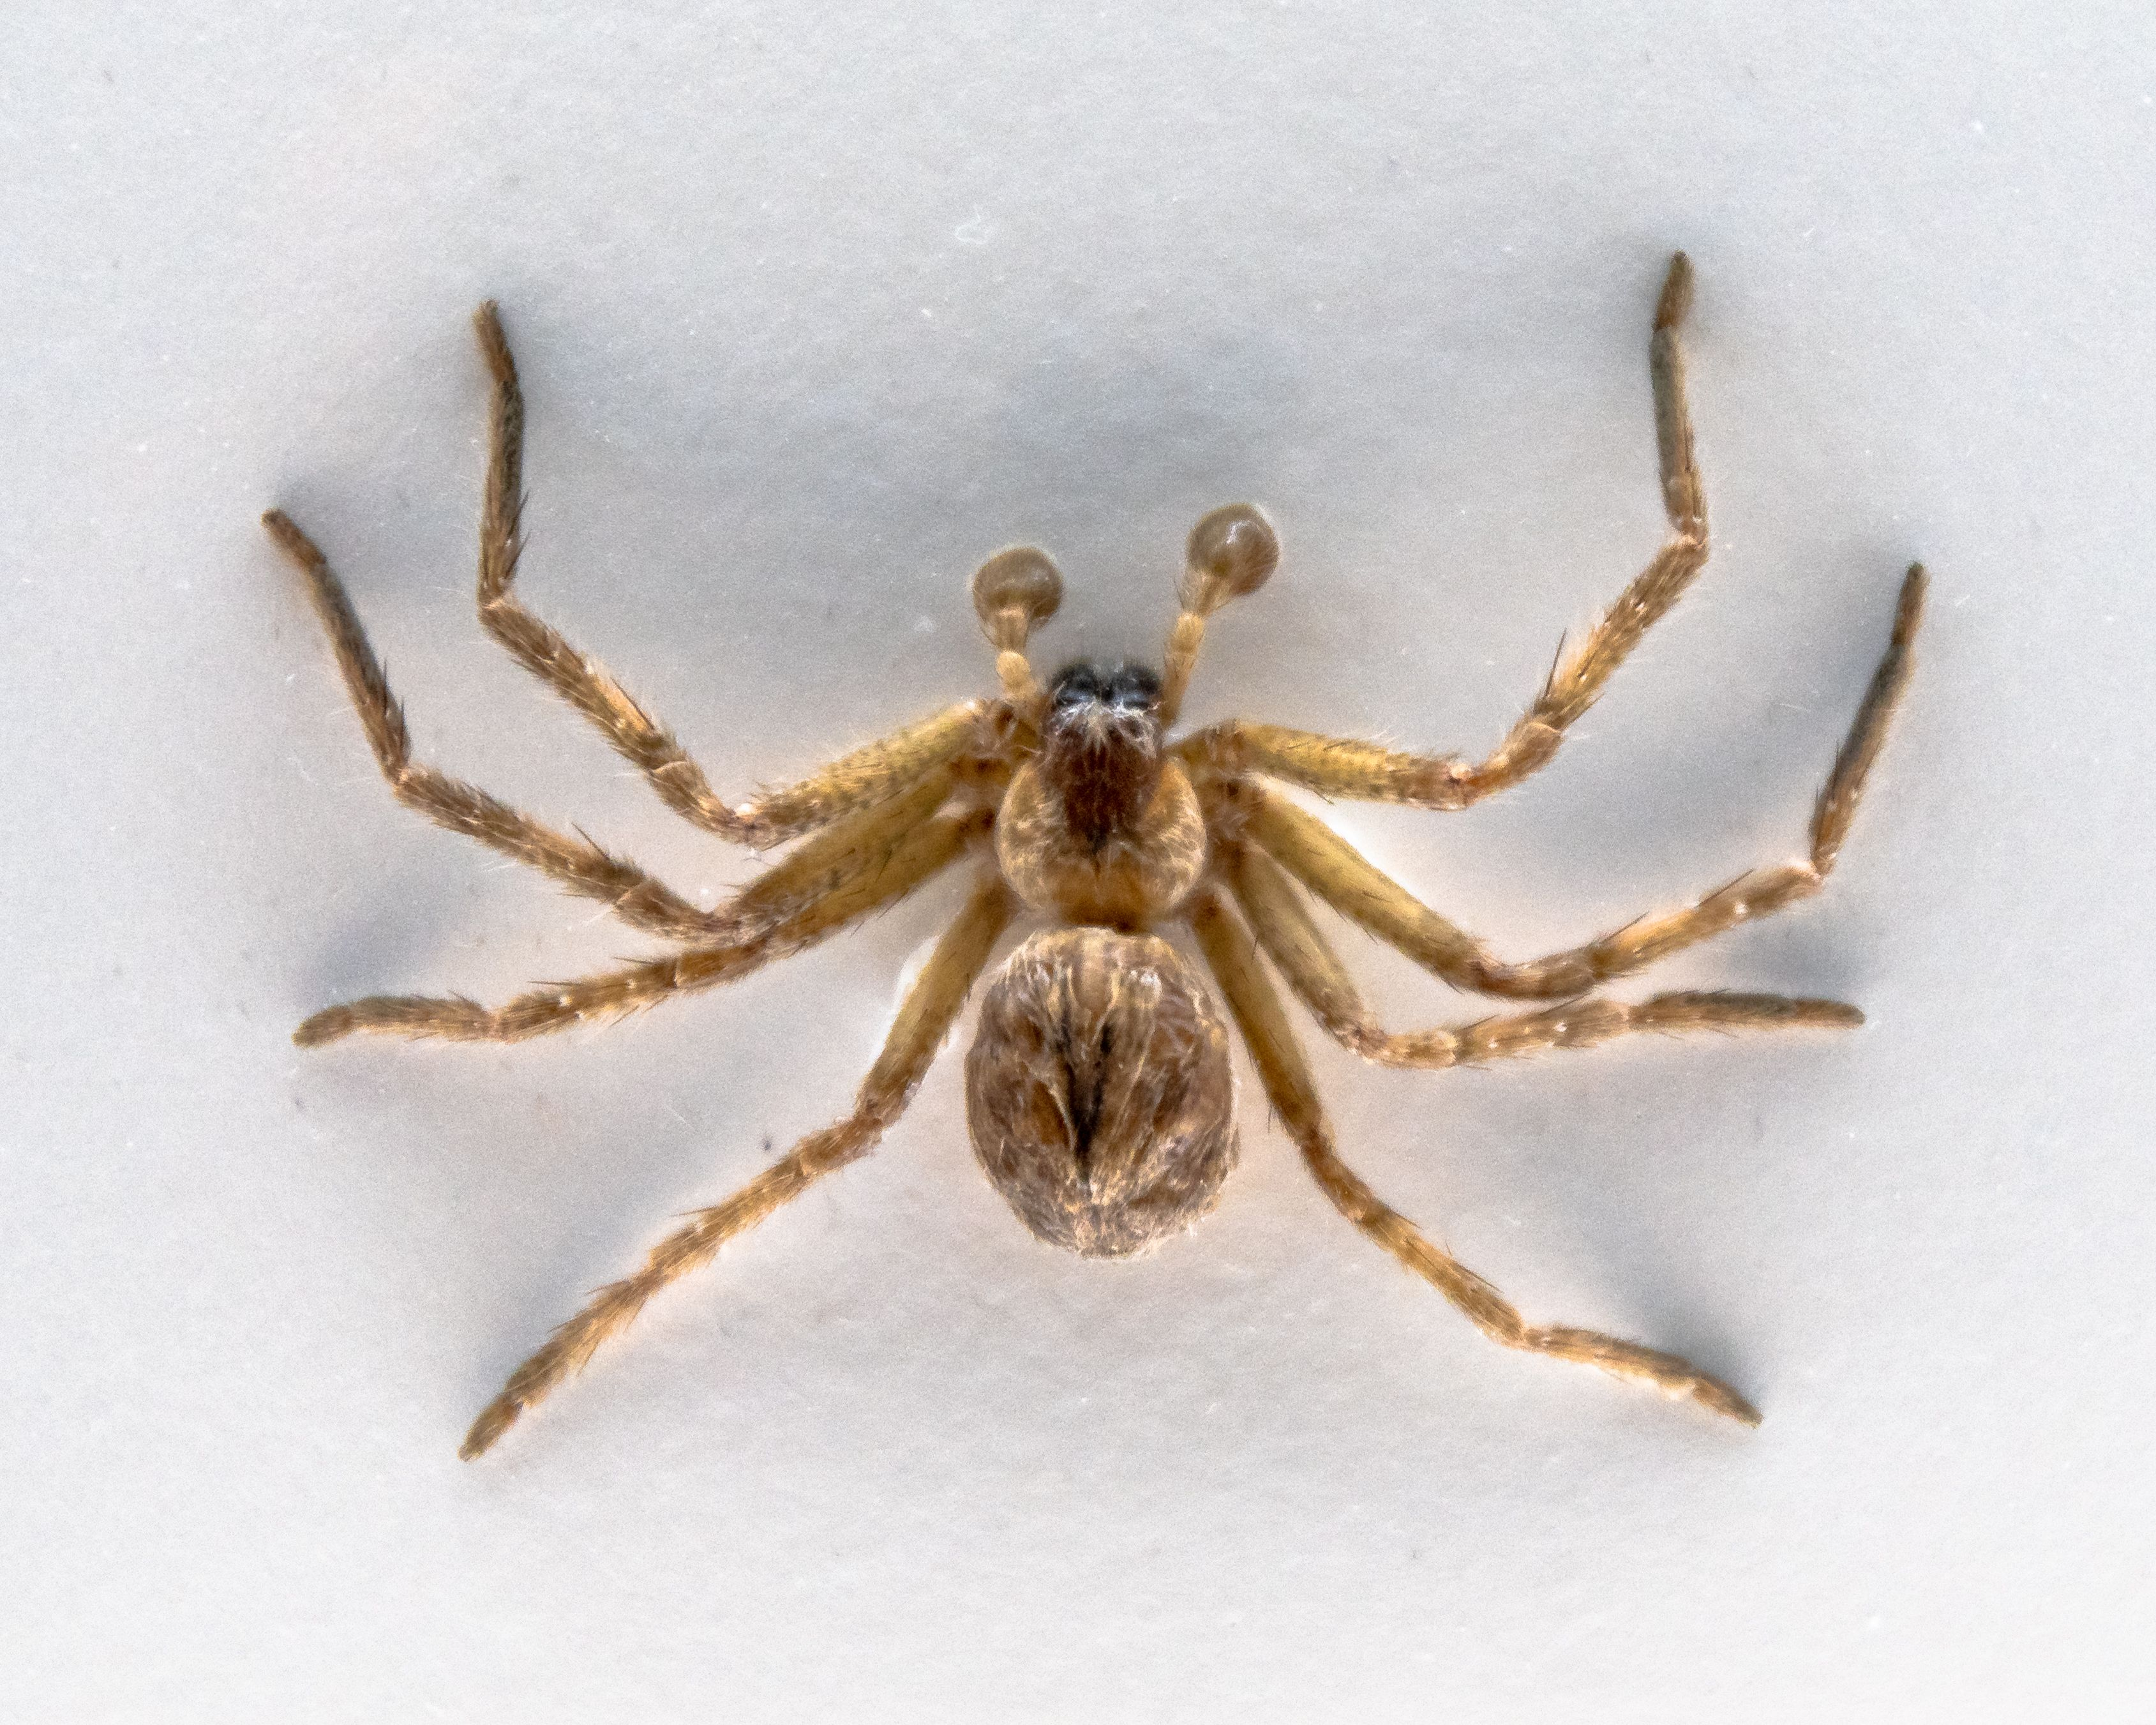 This Photo of a Huntsman Spider Eating a Possum Is Giving the Internet Nightmares